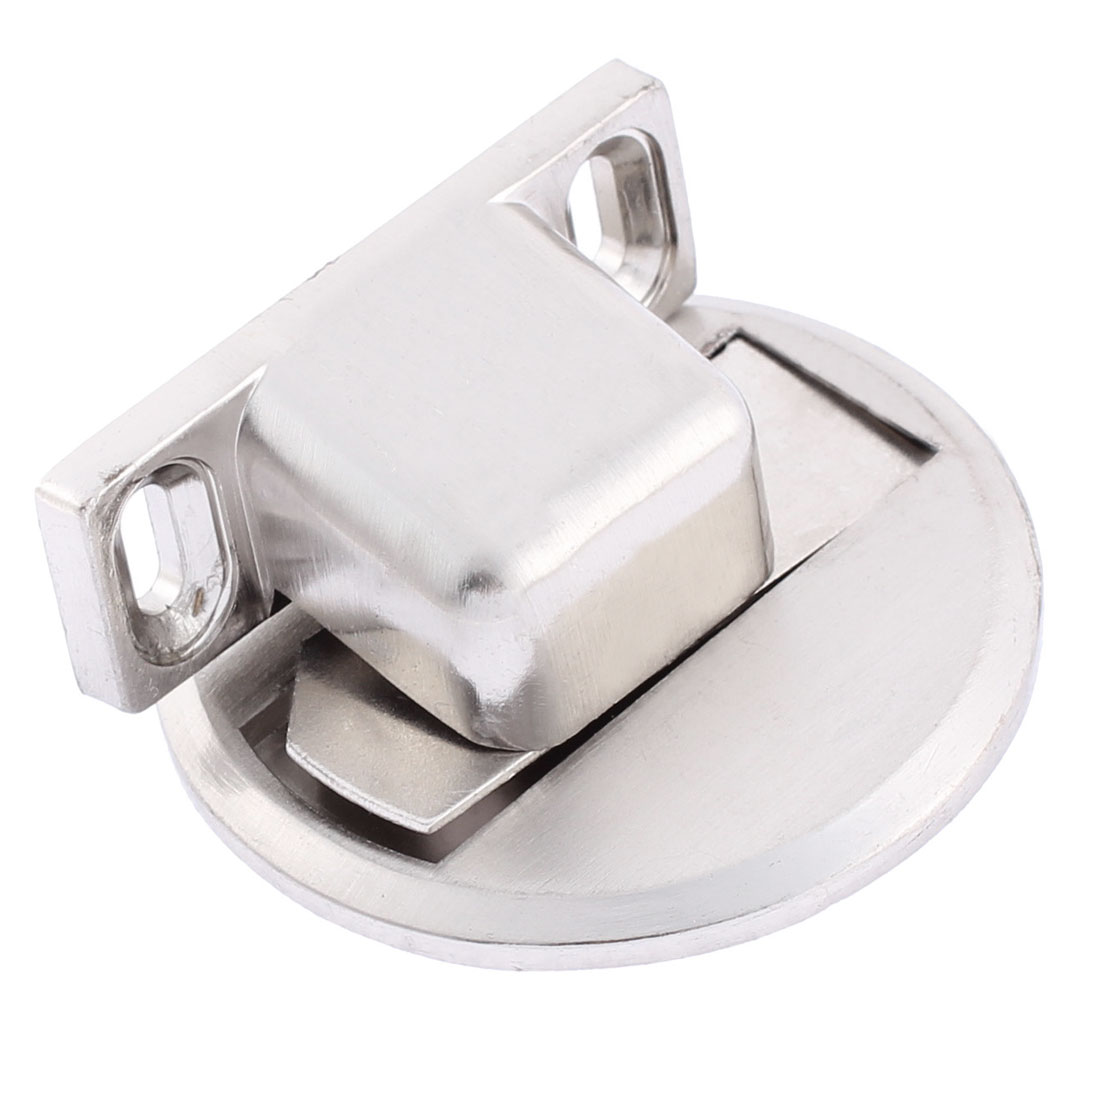 Home Office Magnetic Door Stopper Holder Safety Catch Guard 59mm Dia